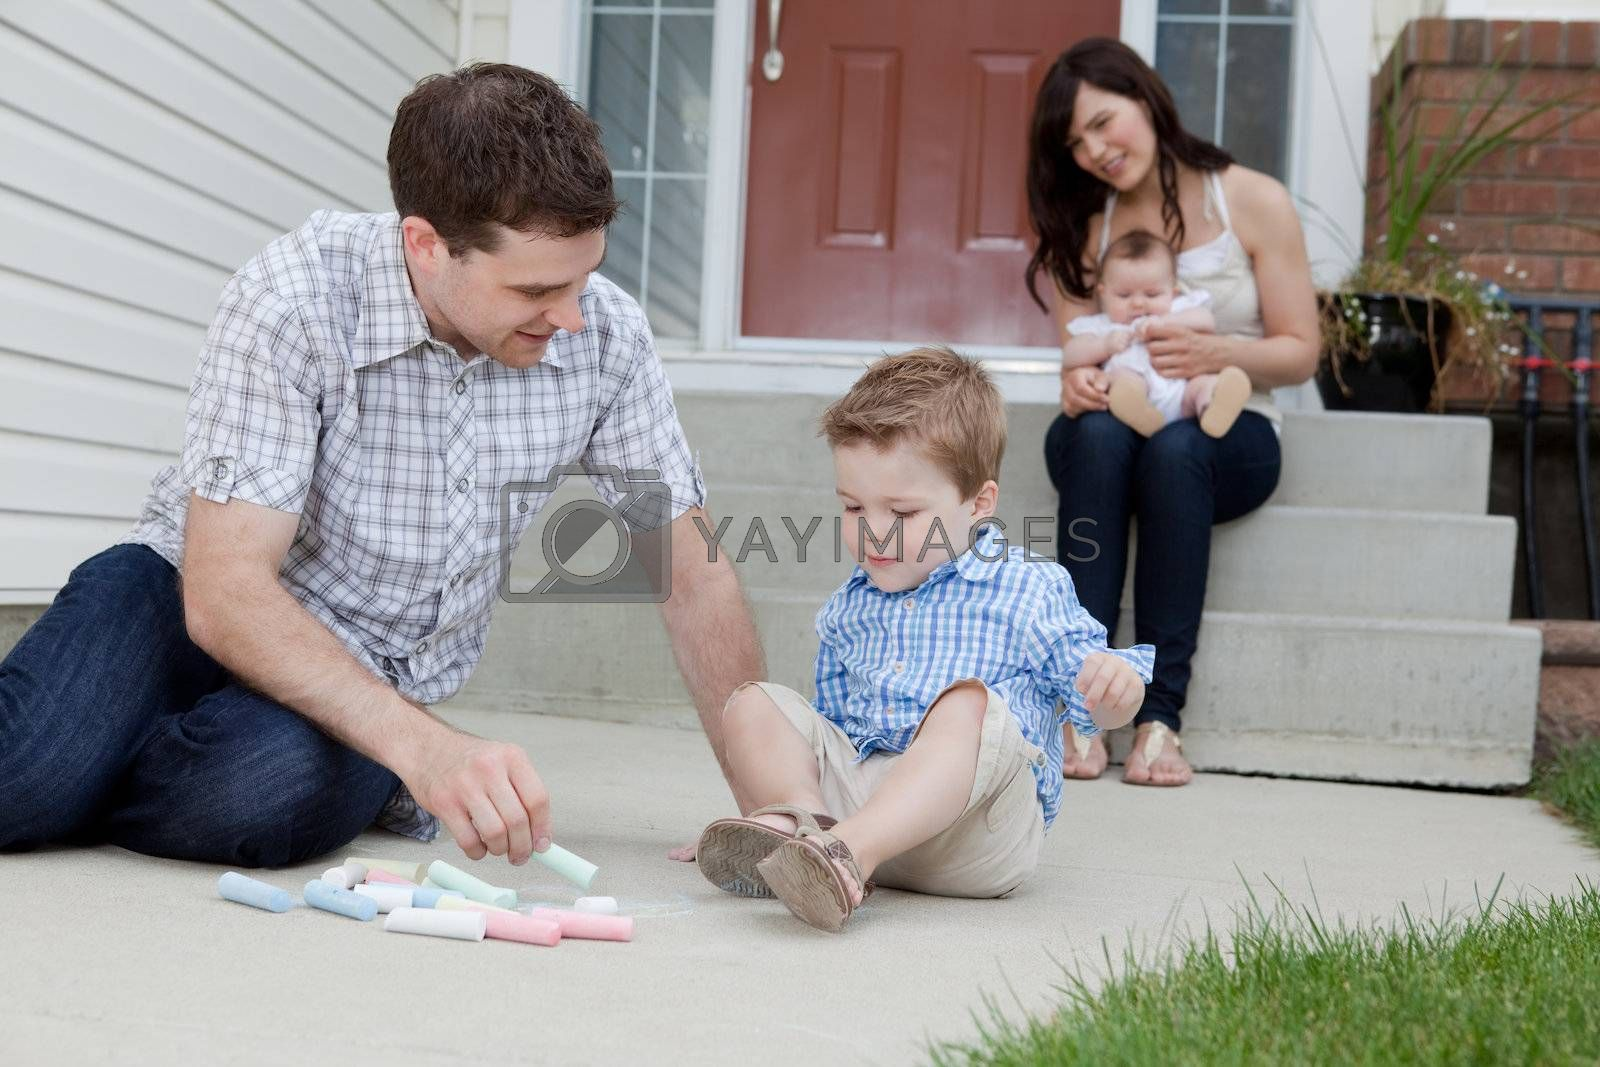 Young Father And Son Drawing With Chalk And Mother Sitting With Baby At Background In Front Of Their House.